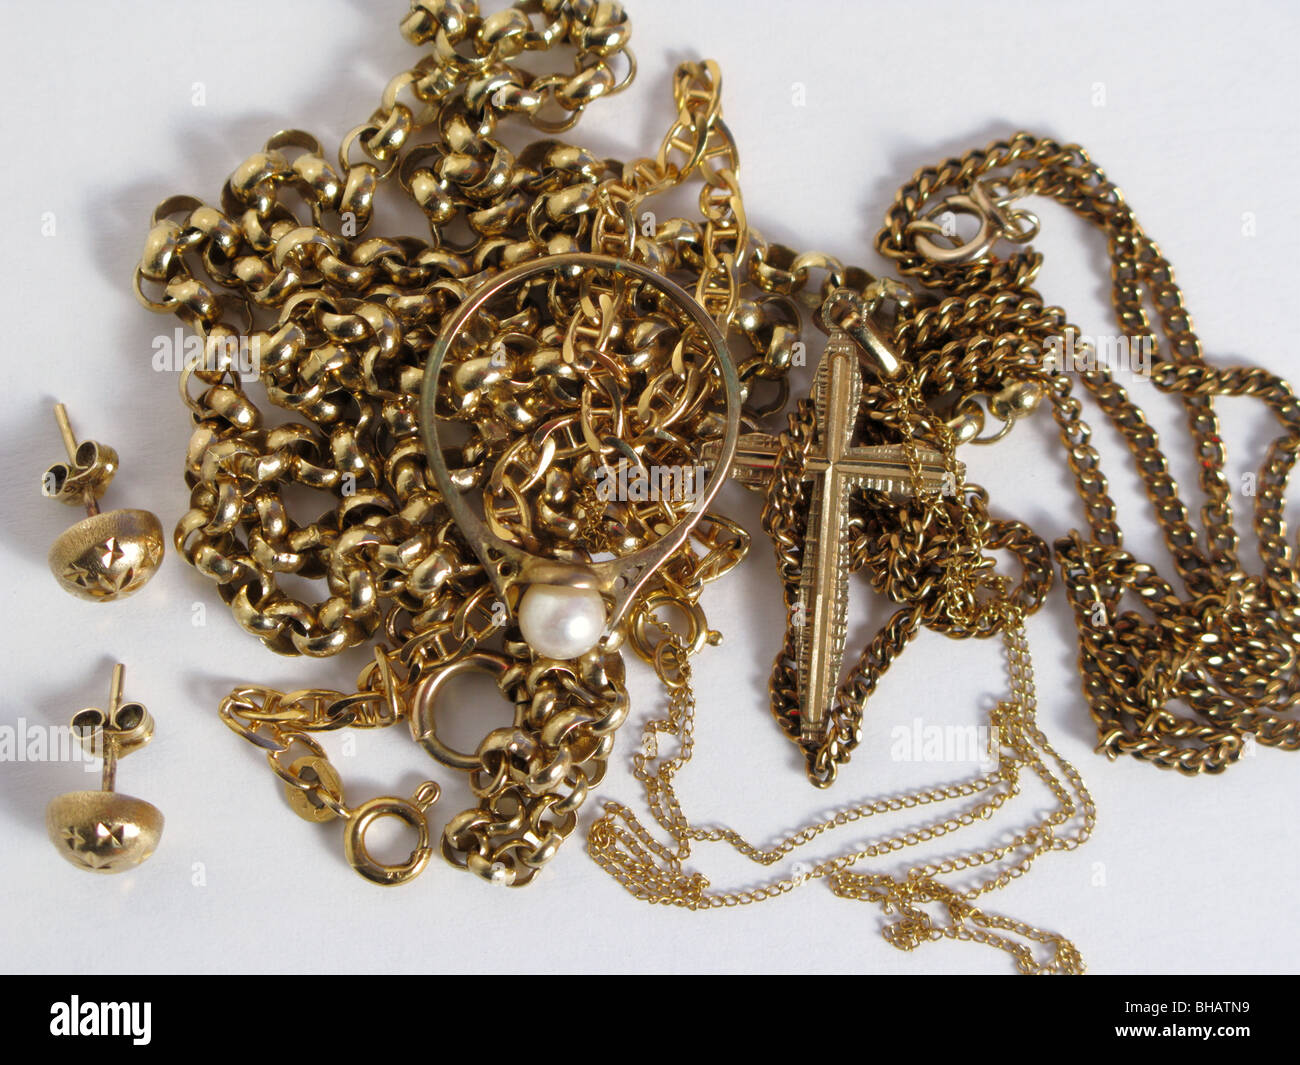 2019 year for lady- Jewellery Gold pile